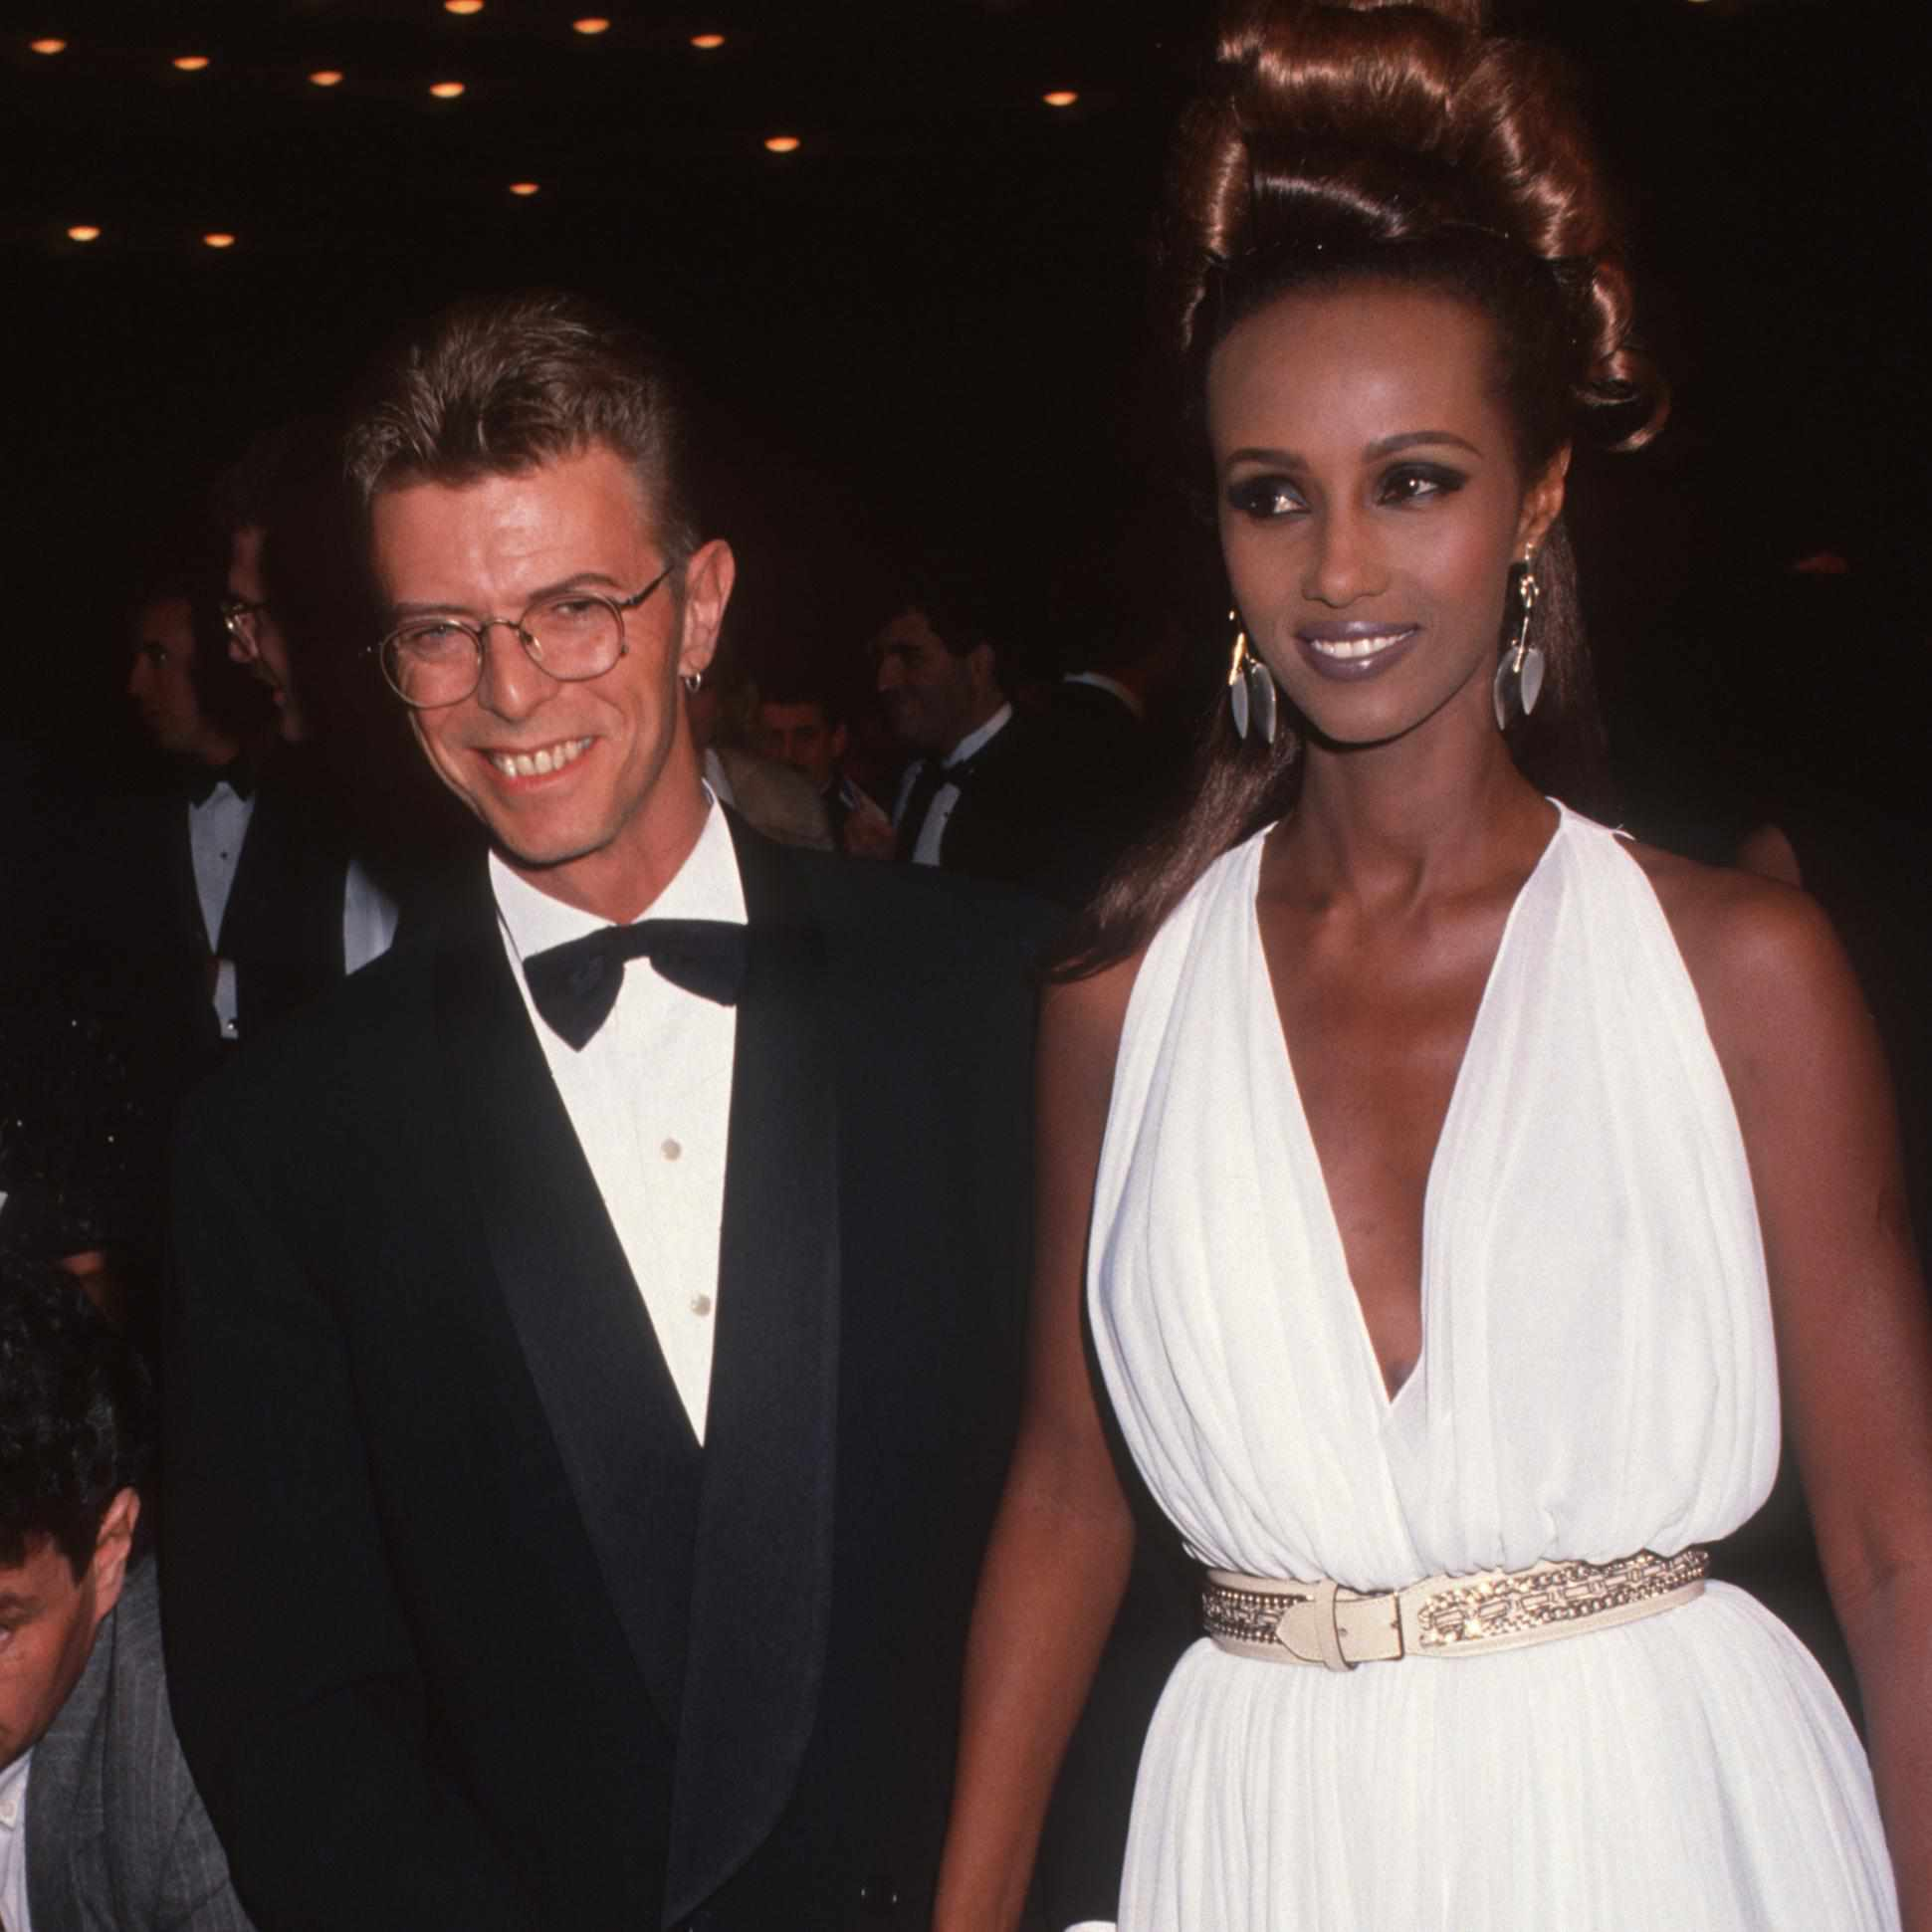 David Bowie and Iman: A Look Back on Their Love Story